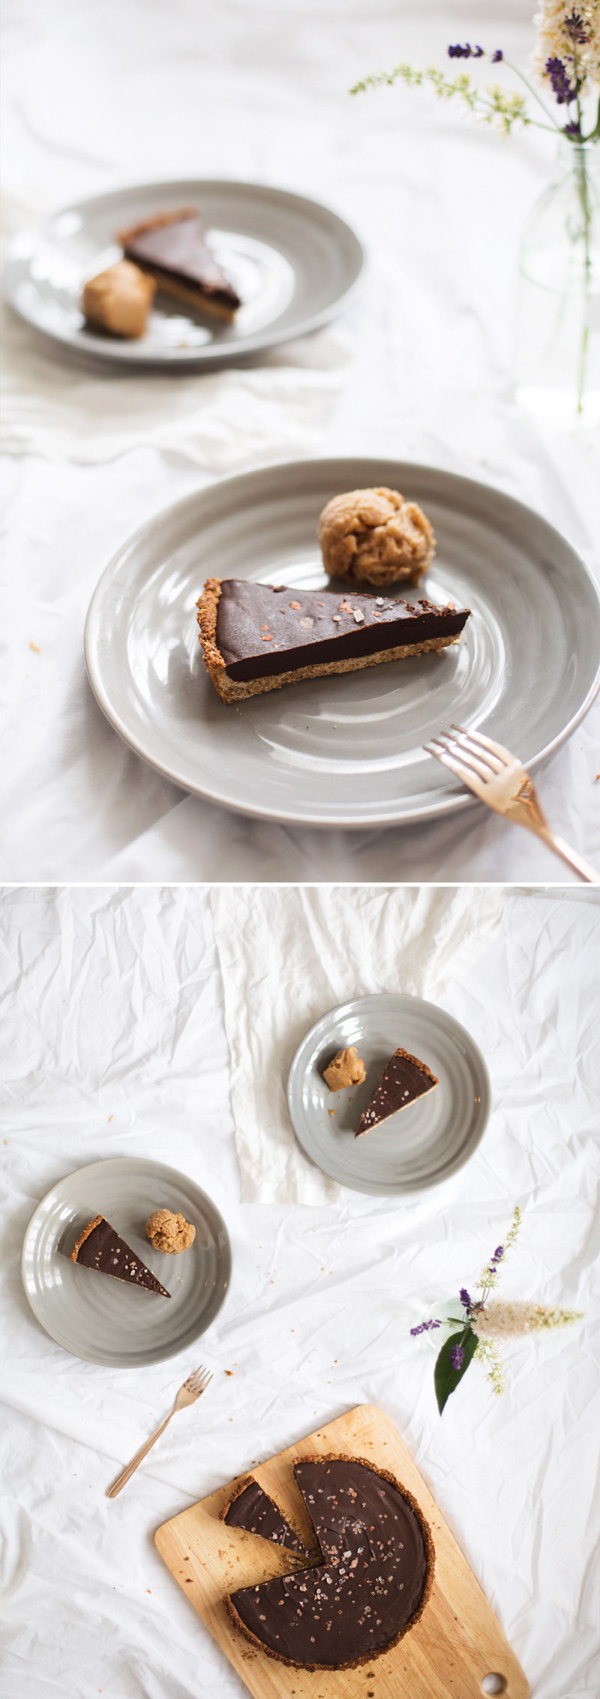 easy-gluten-free-vegan-chocolate-dessert